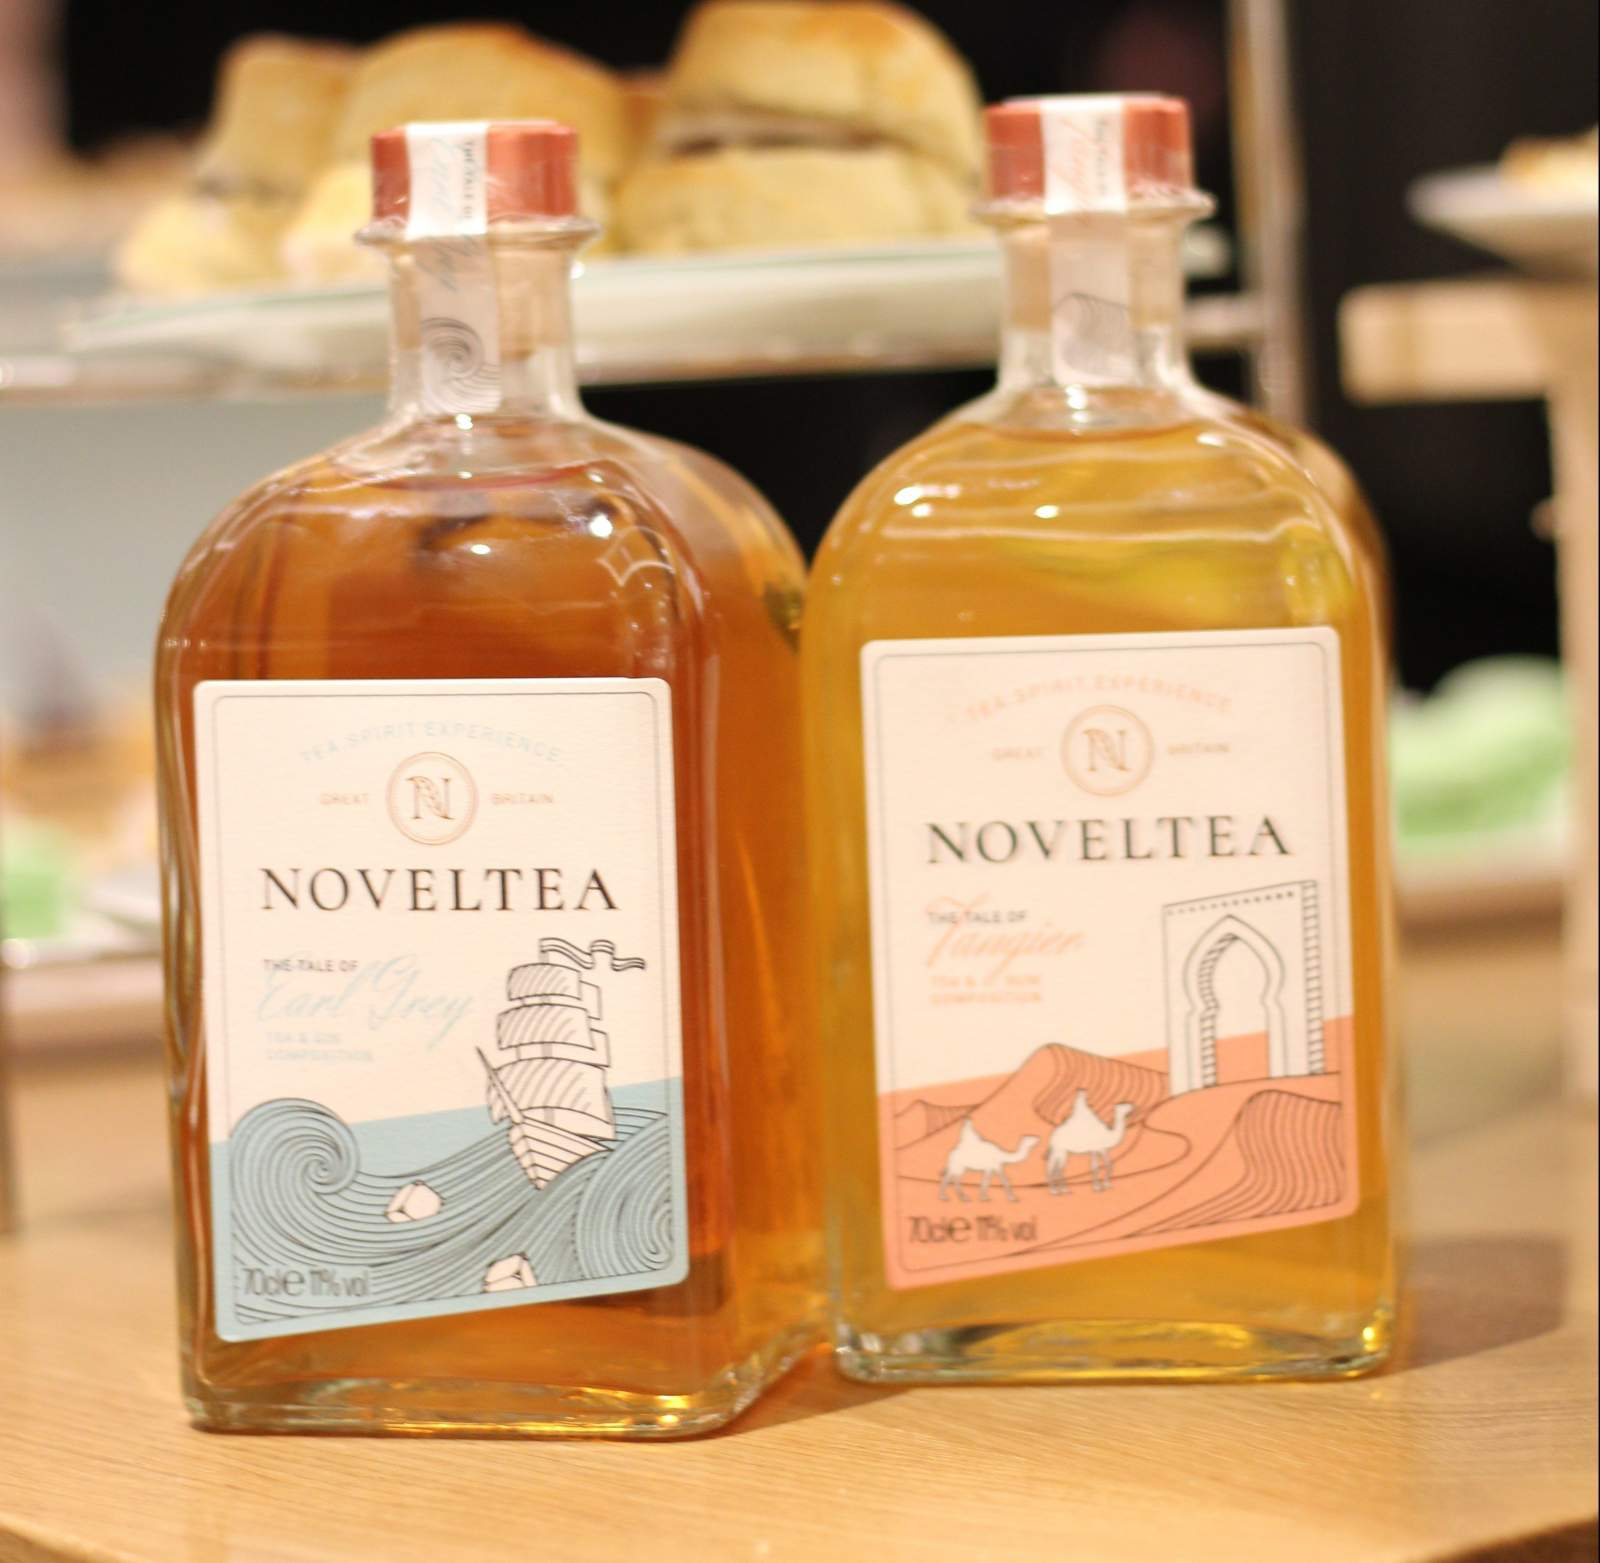 NOVELTEA launch in Fenwicks Newcastle